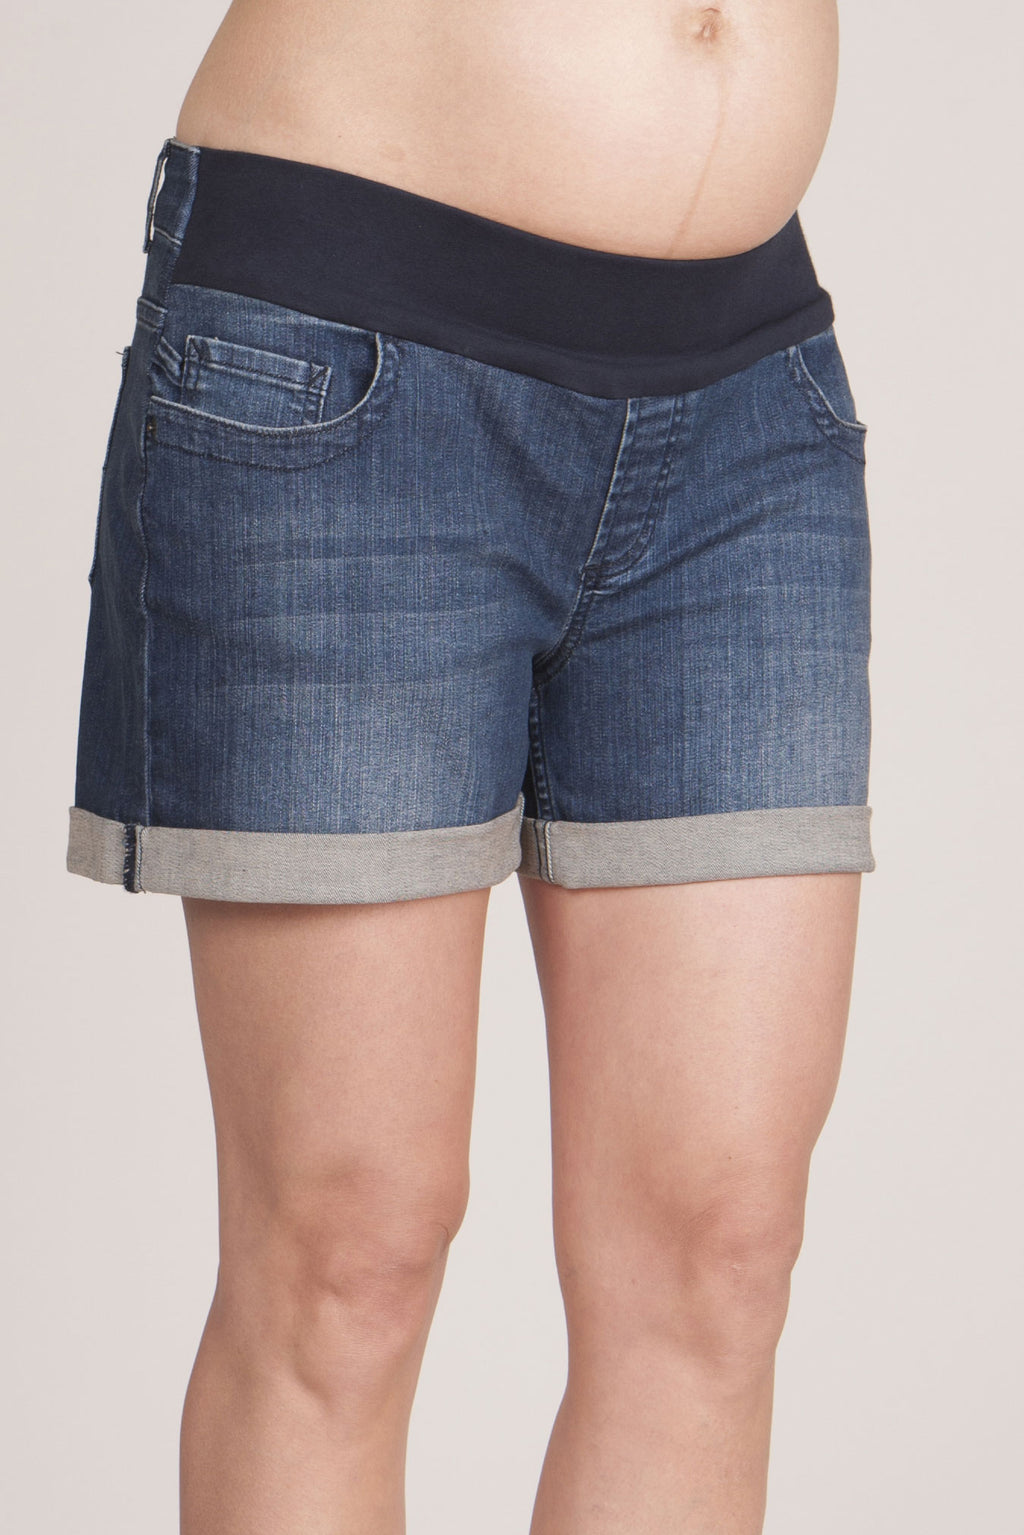 Denim Maternity Shorts - Seven Women Maternity